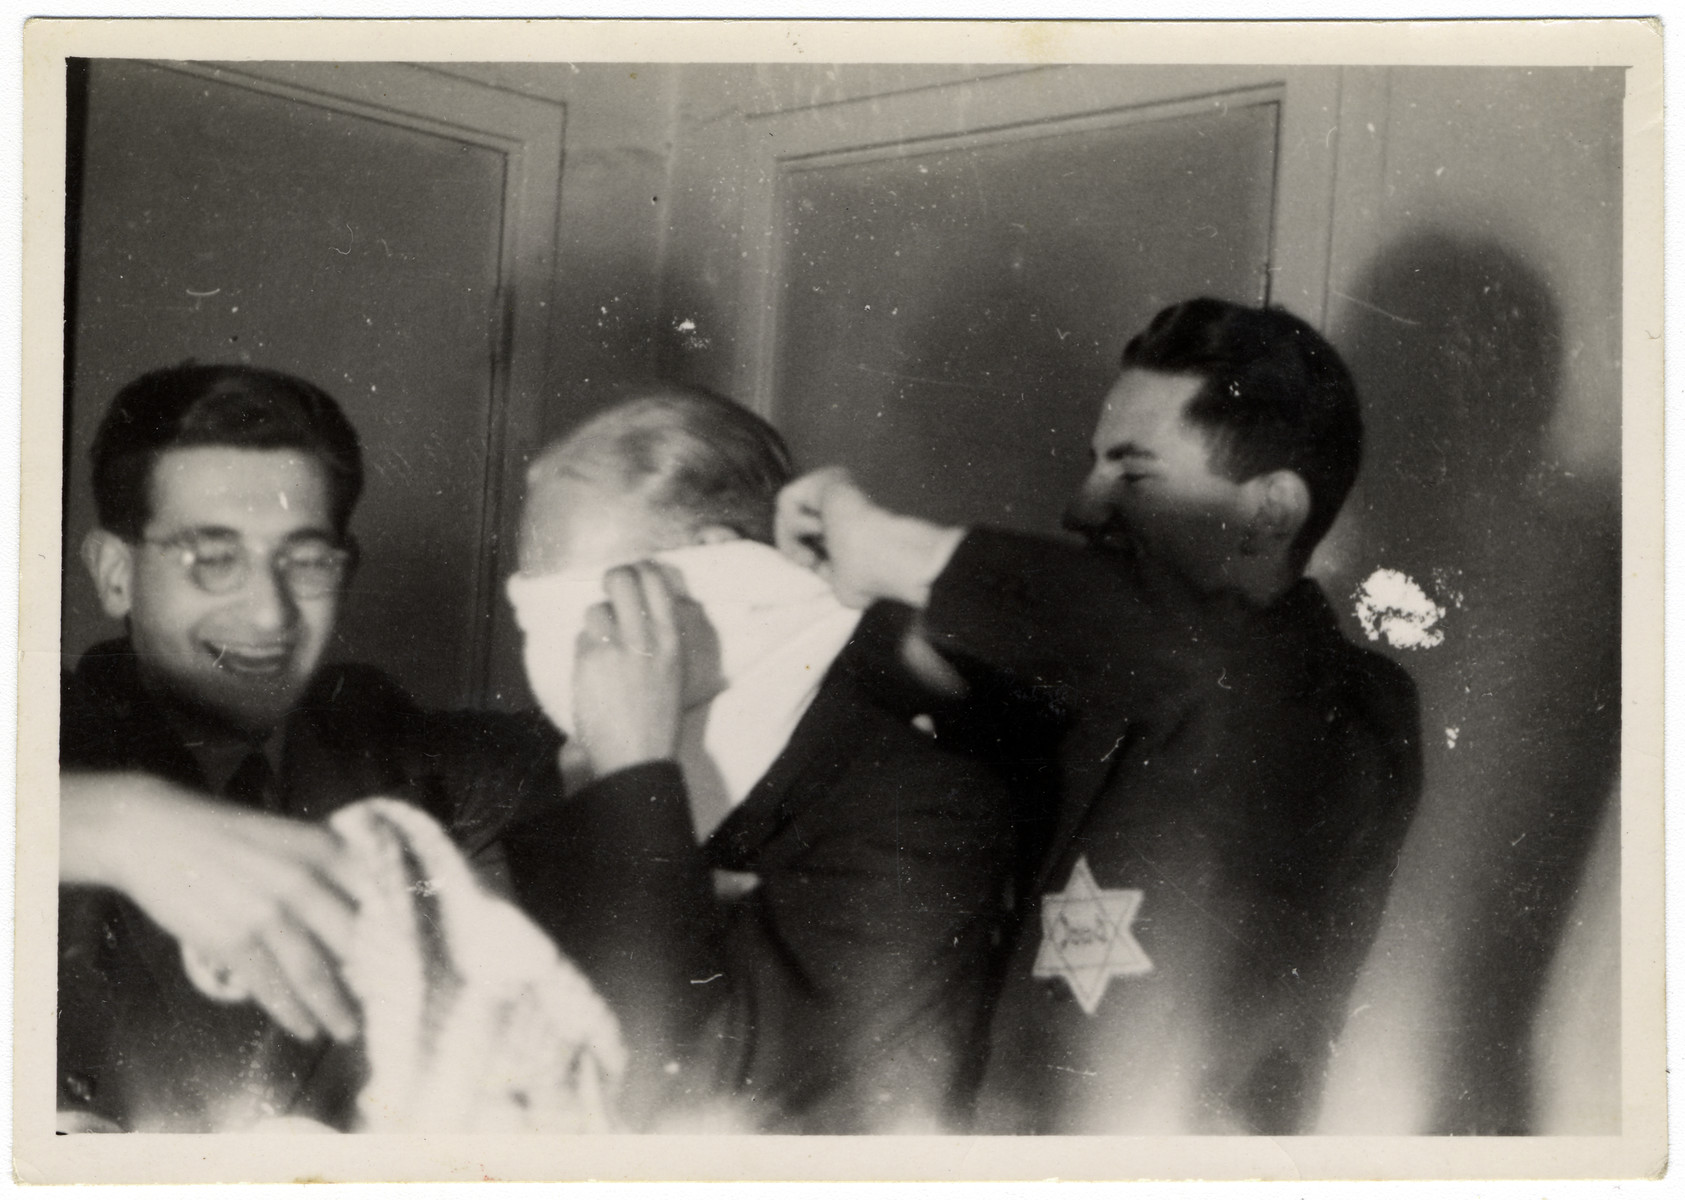 Jewish teenagers play a game with a blindfold at a party hosted by Rudy Acohen (left).  Shortly thereafter he was arrested in a reprisal action and sent to Auschwitz where he perished.